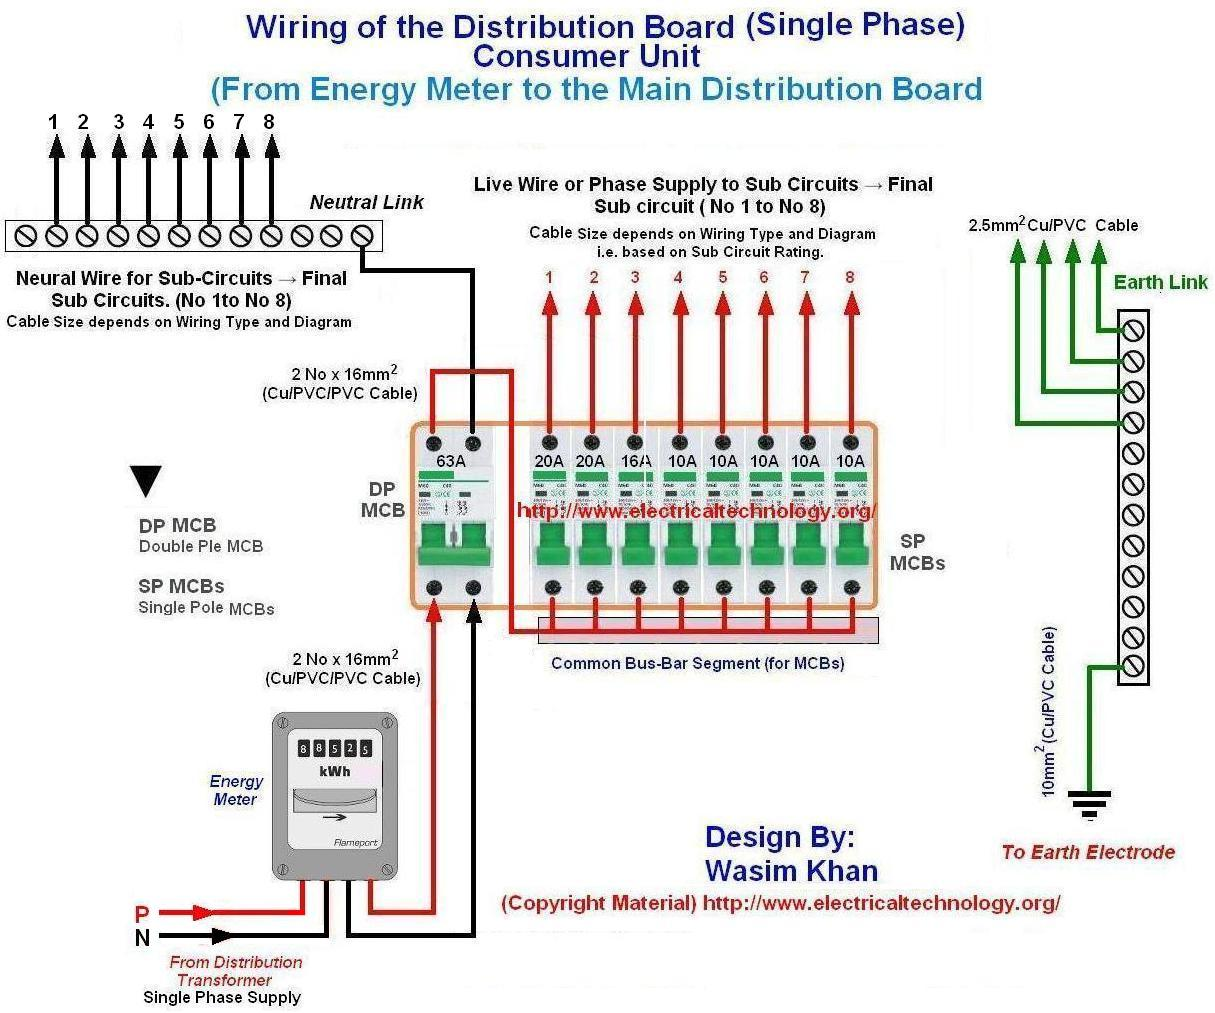 Wiring of the distribution board , Single phase, from